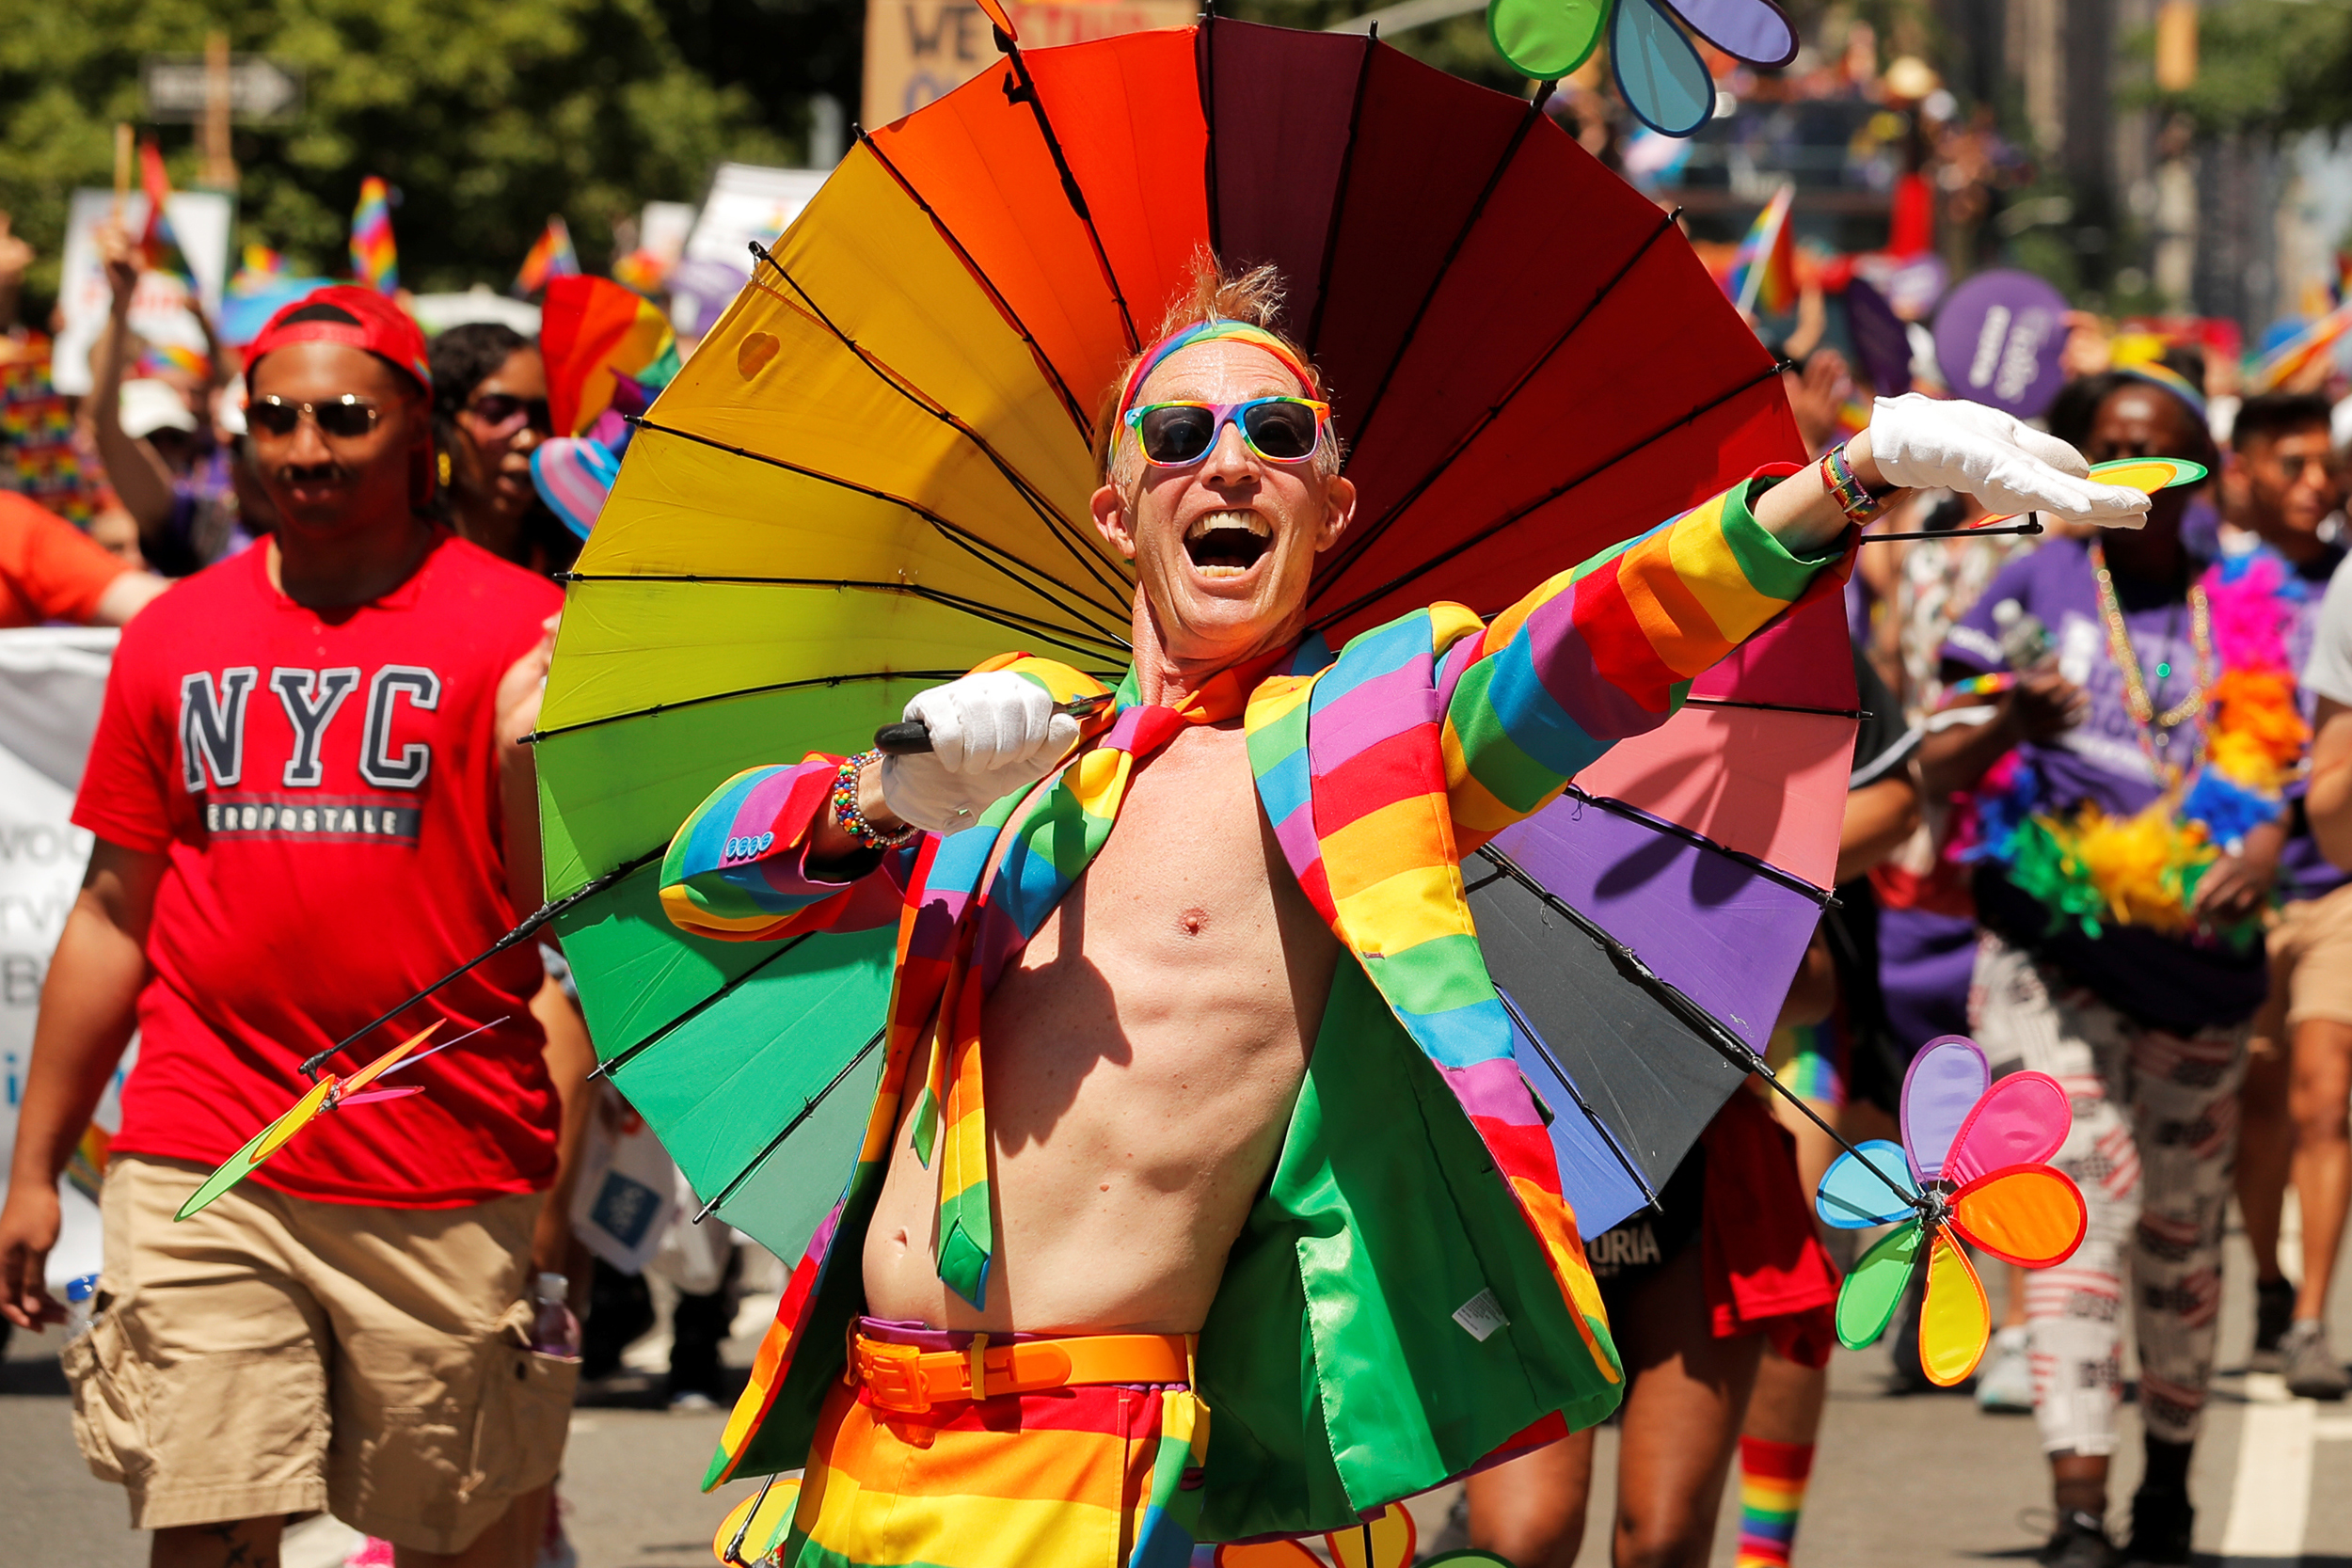 Pride 2021: Big cities 'playing the safe card' with small gatherings,  virtual events